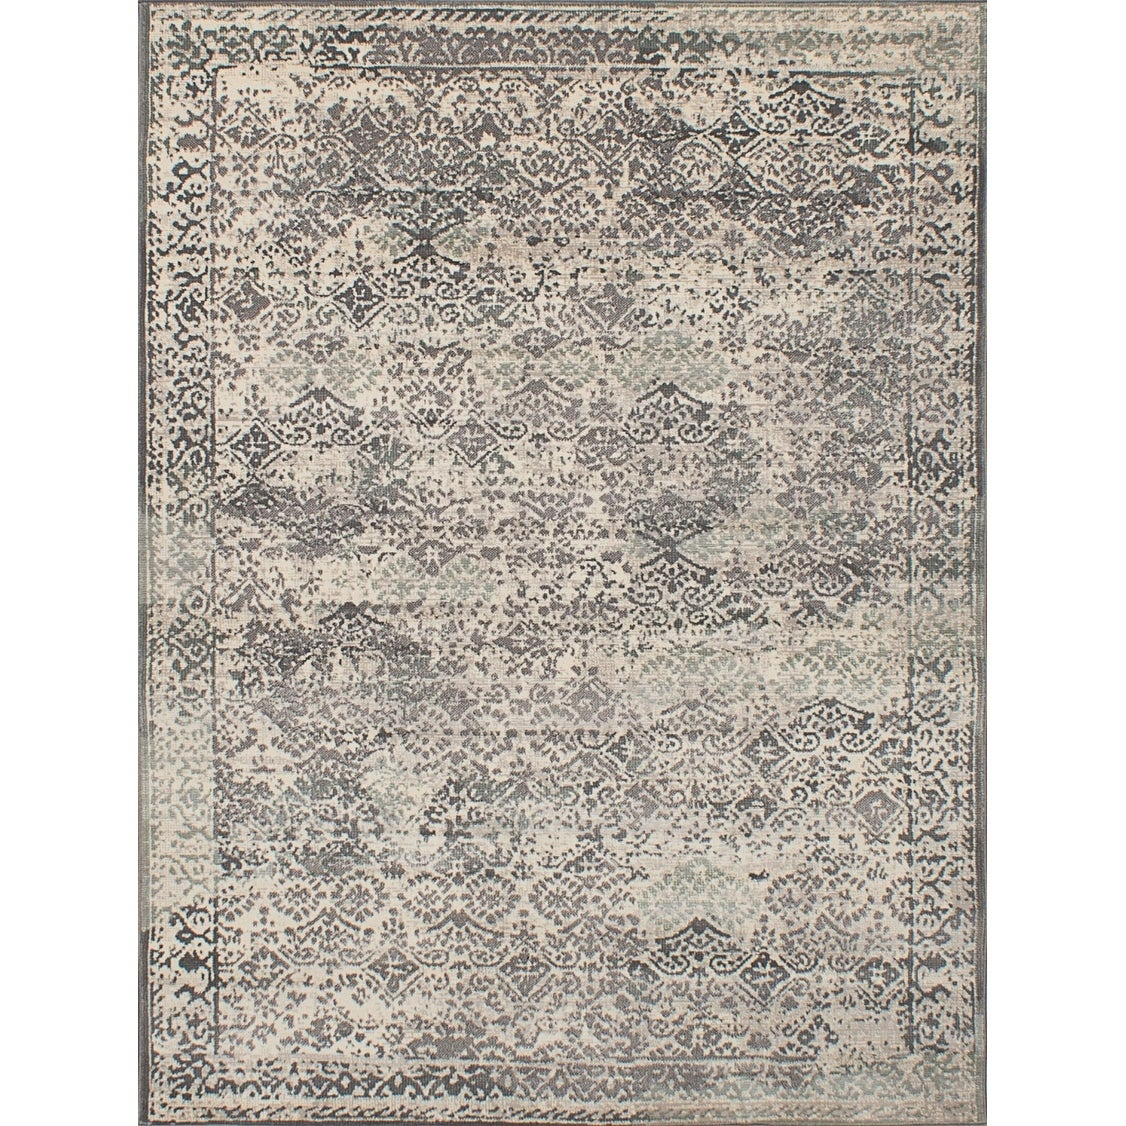 ECARPETGALLERY Power Loomed Antique Dark Grey, Ivory Polypropylene Rug - 53 x 71